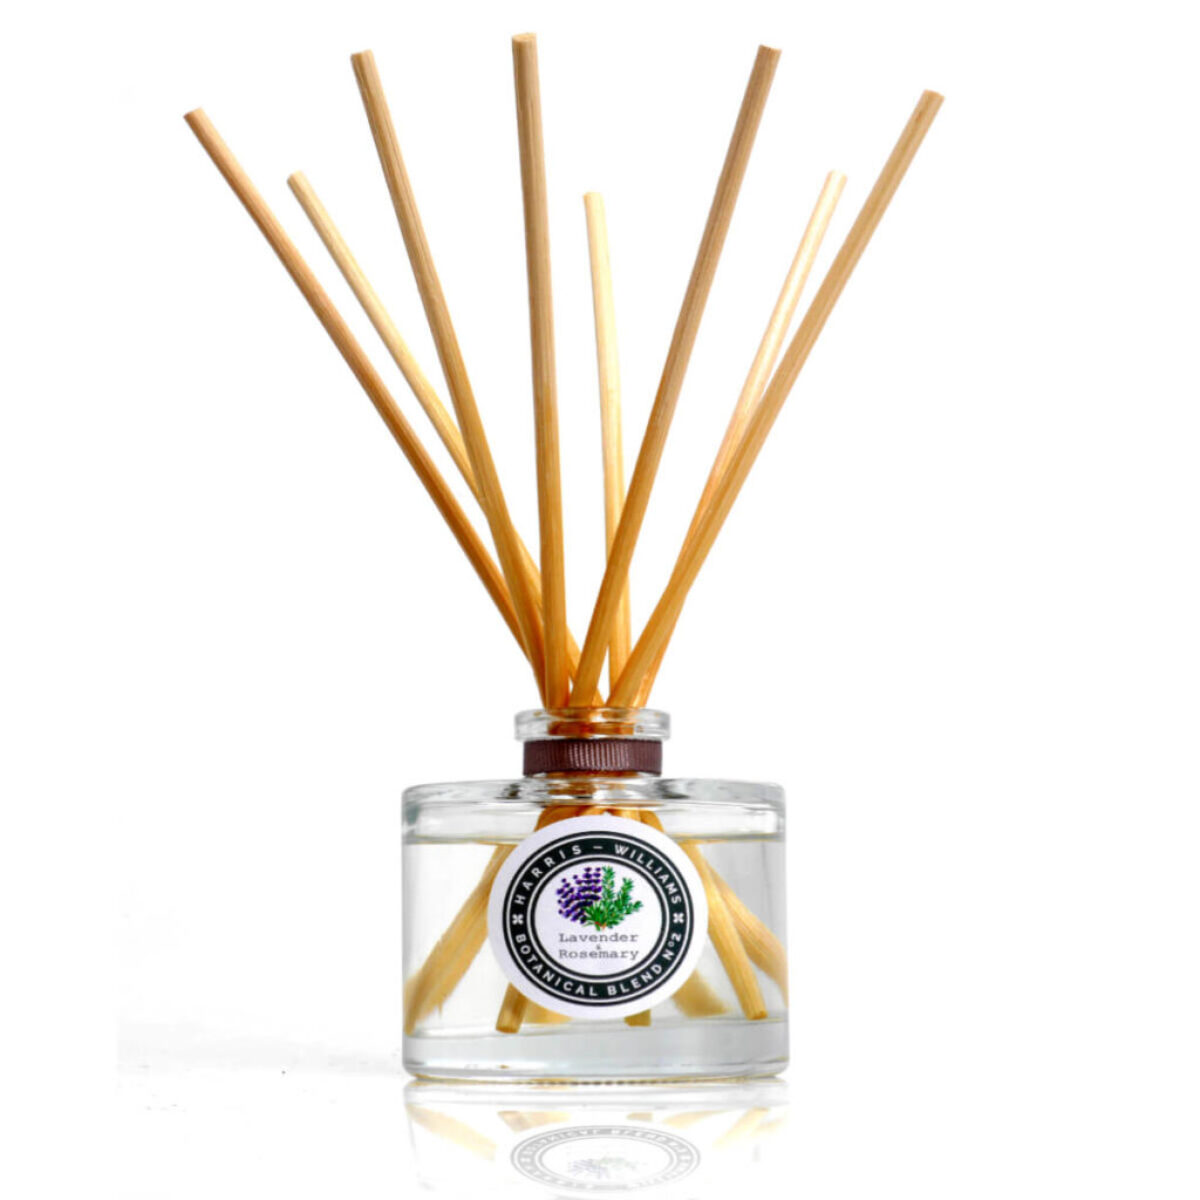 Botanical Blend No 2 Lavender & Rosemary Reed Diffuser